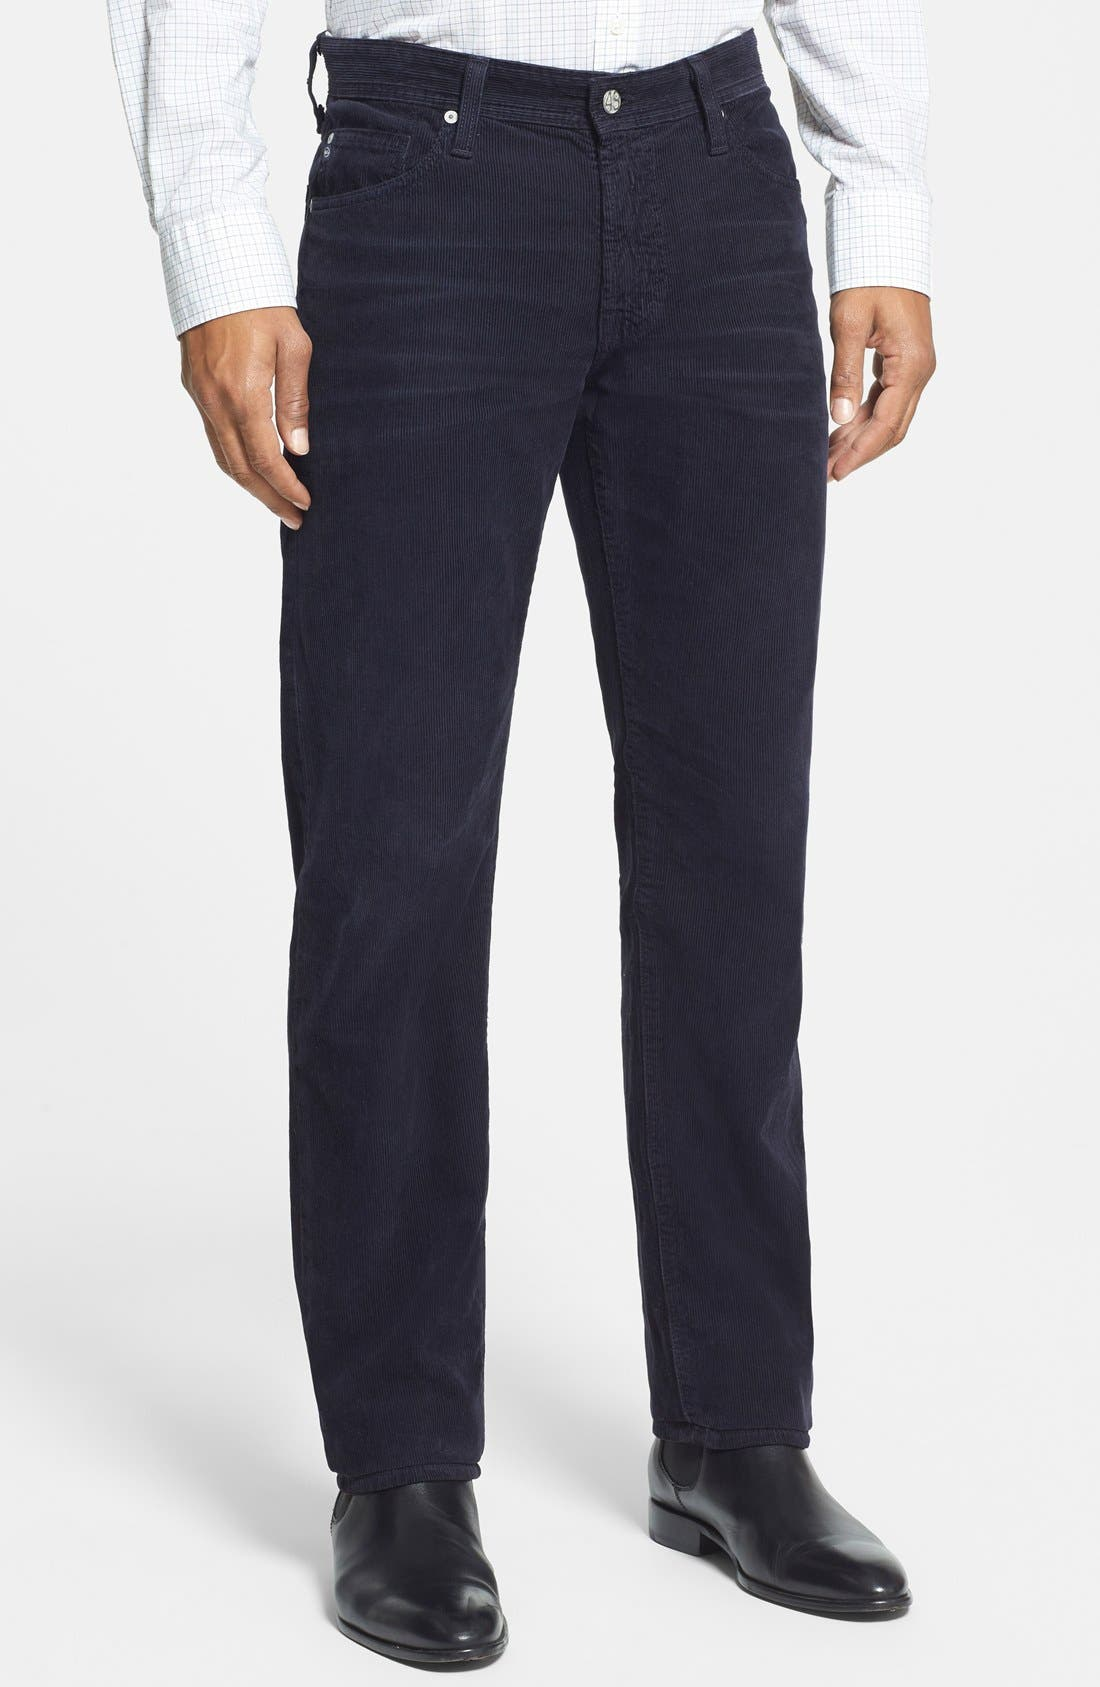 'Graduate' Tailored Straight Leg Corduroy Pants,                             Main thumbnail 14, color,